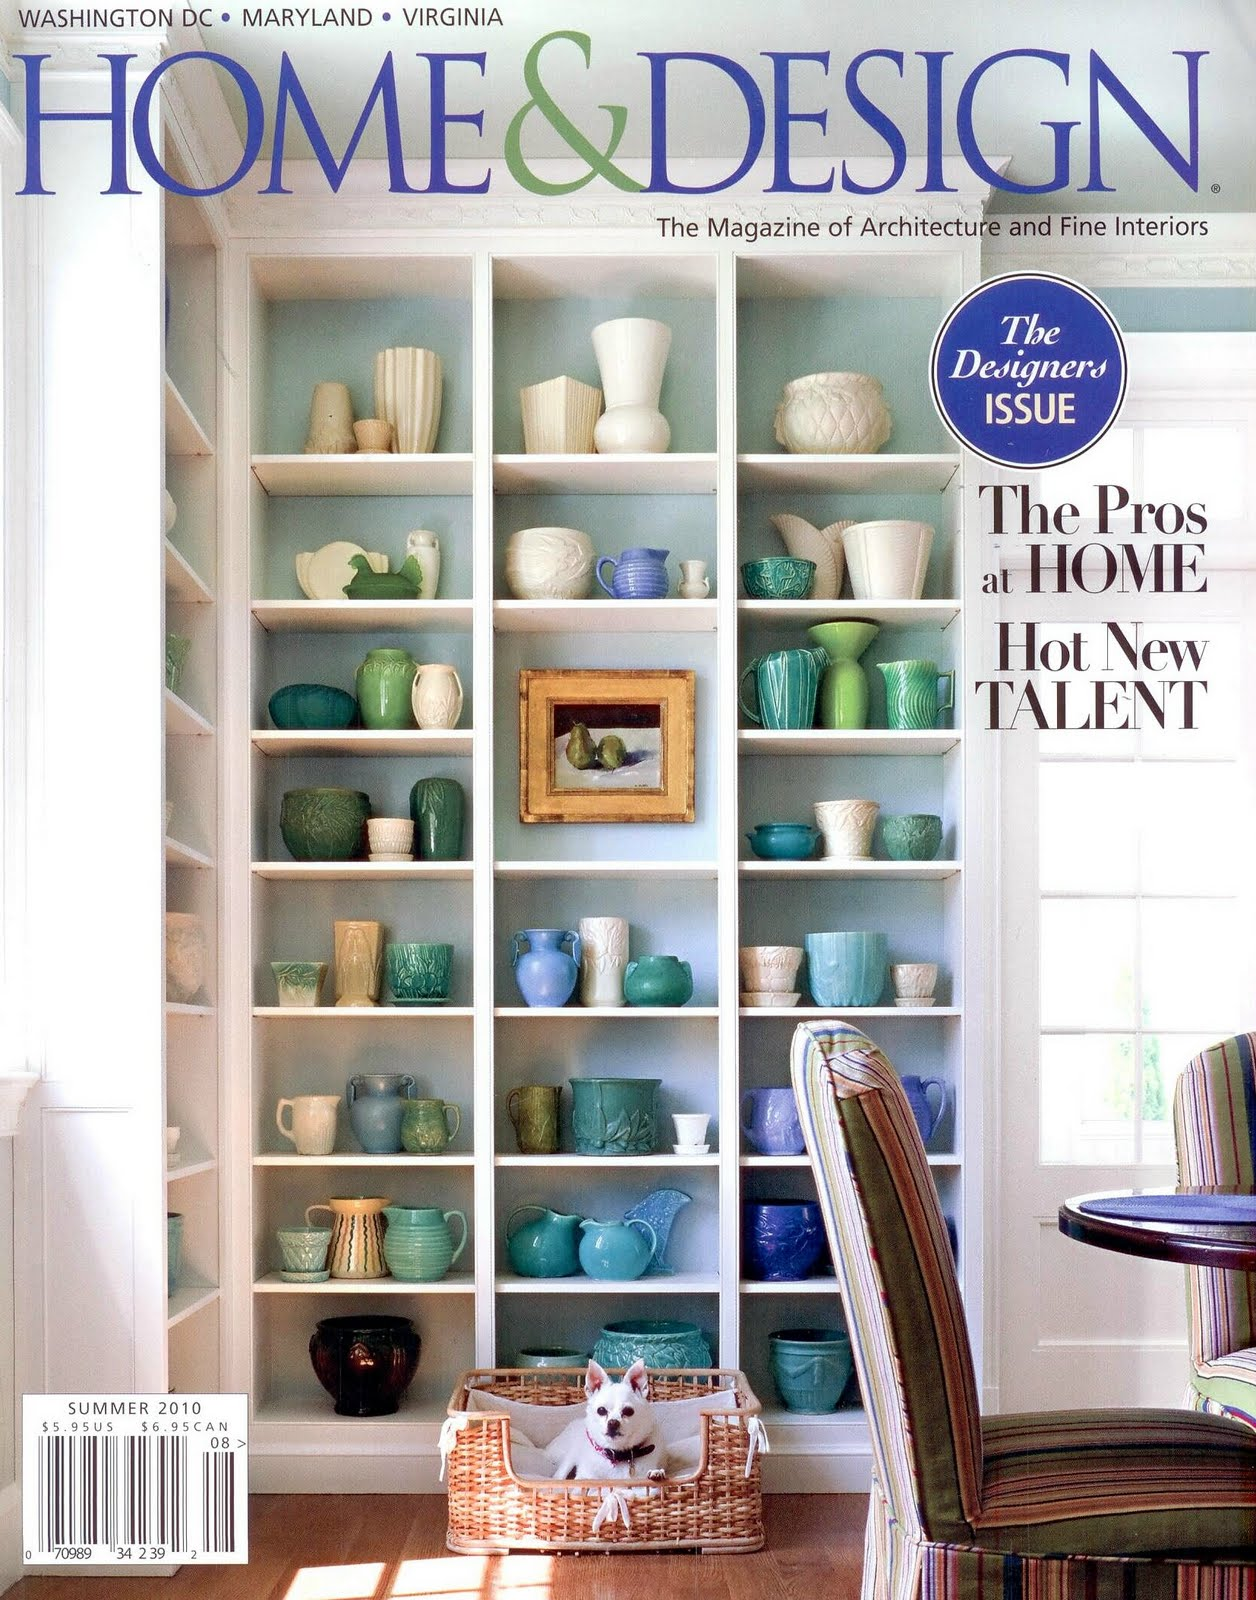 Home Design Magazine Covers